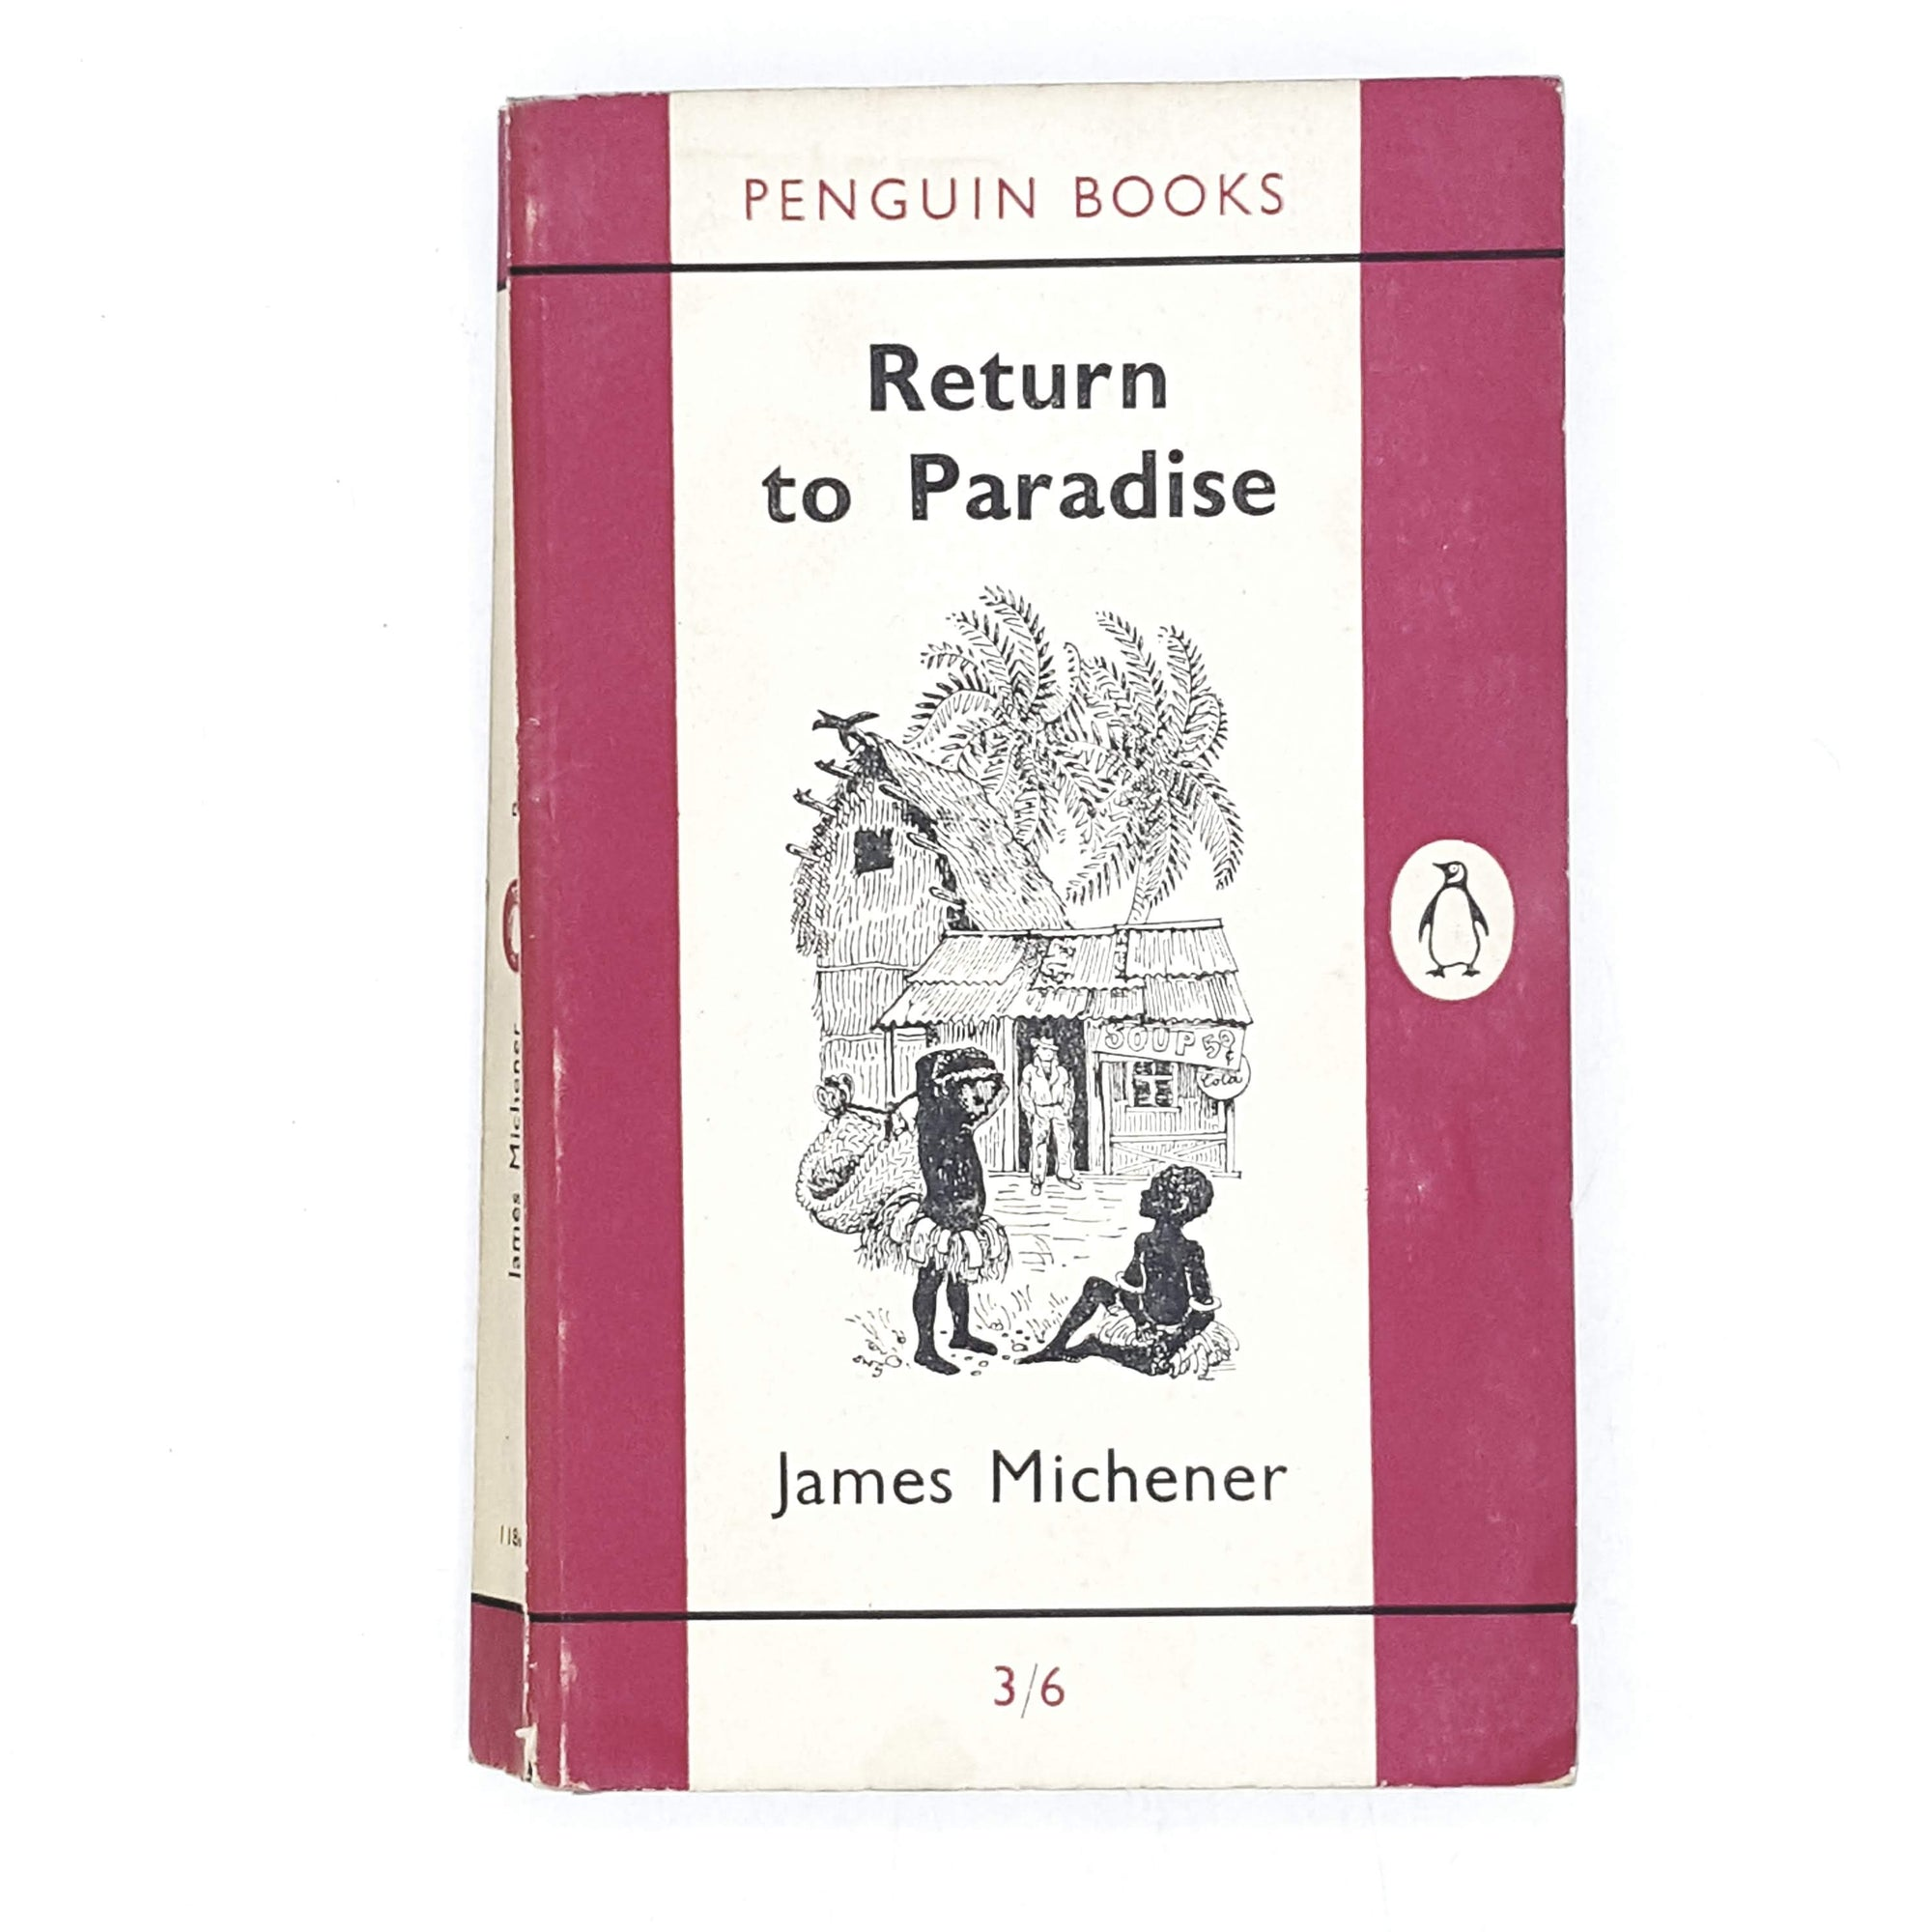 Vintage Penguin Return to Paradise by James Michener 1957